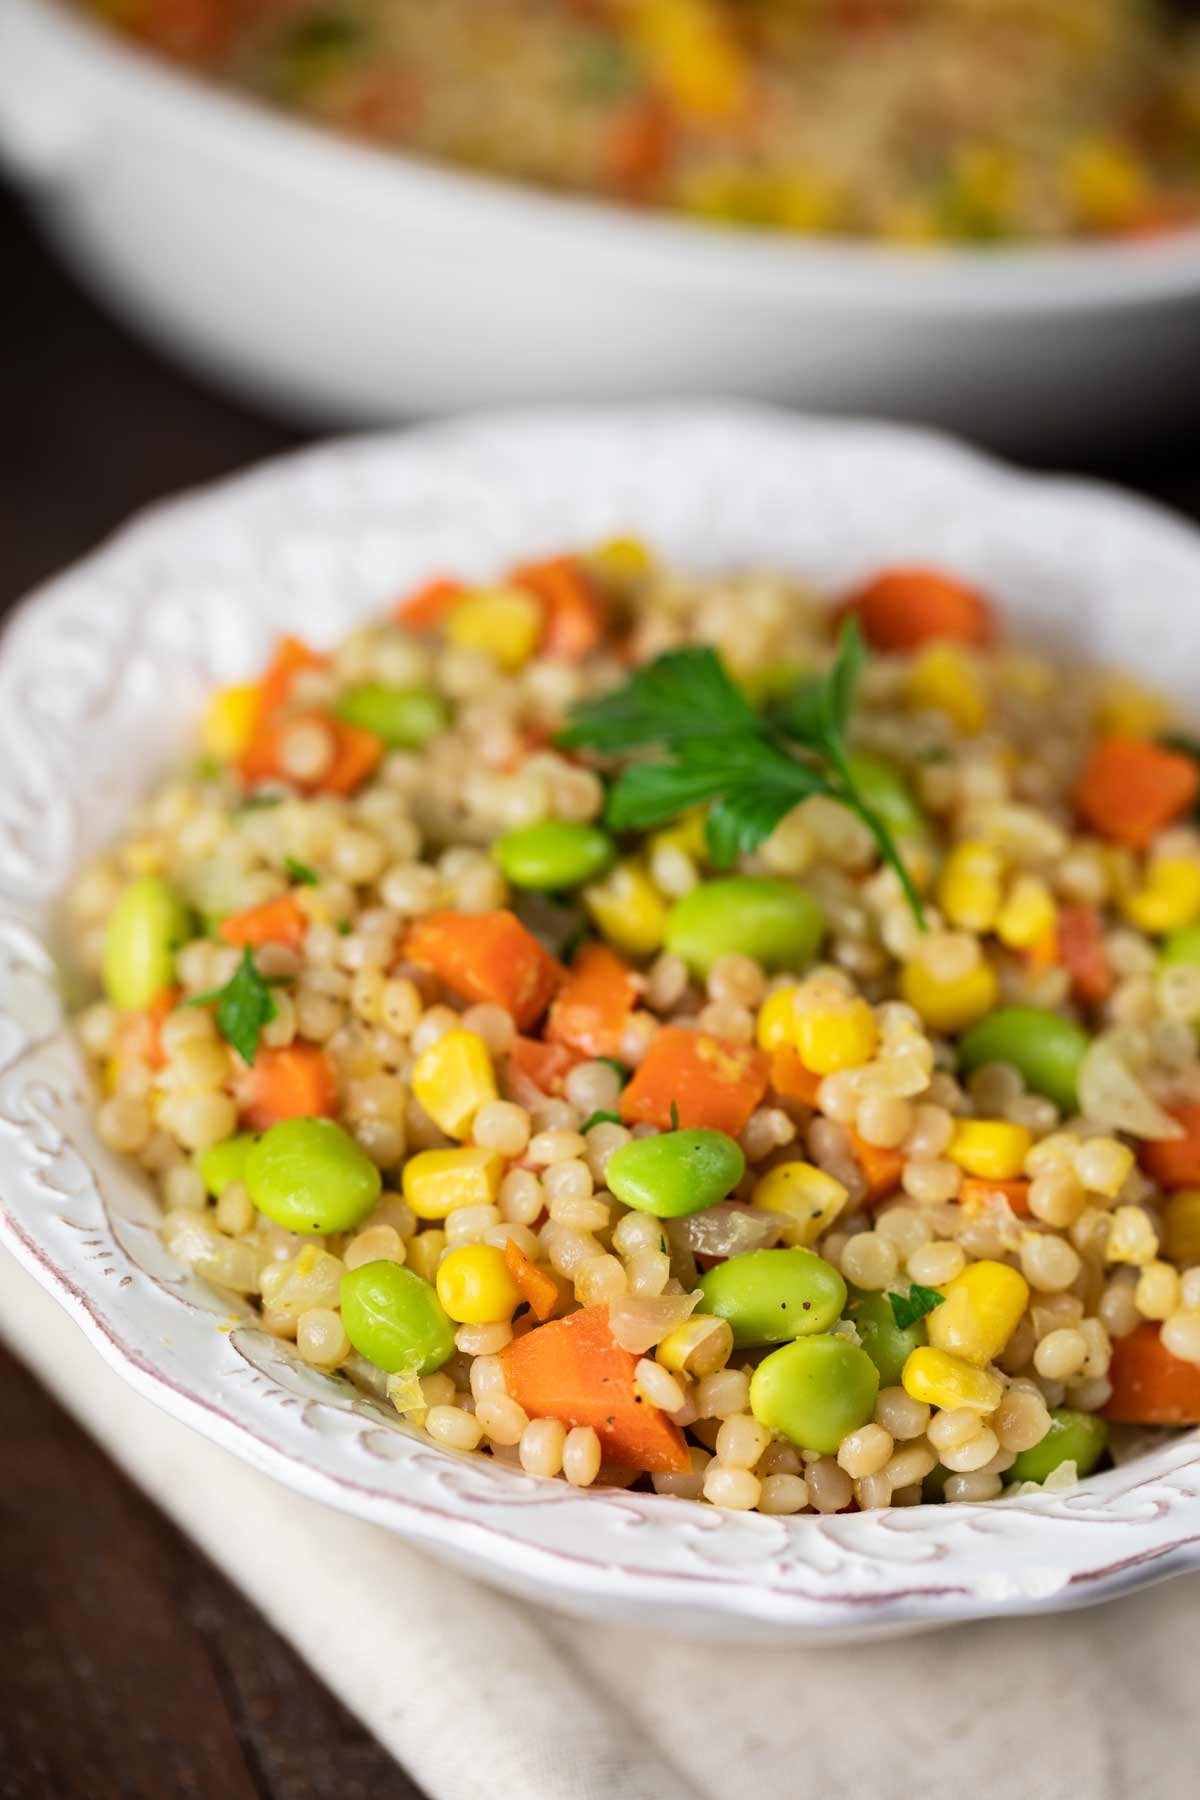 Israeli couscous in a white bowl with edamame, carrots, corn and parsley.